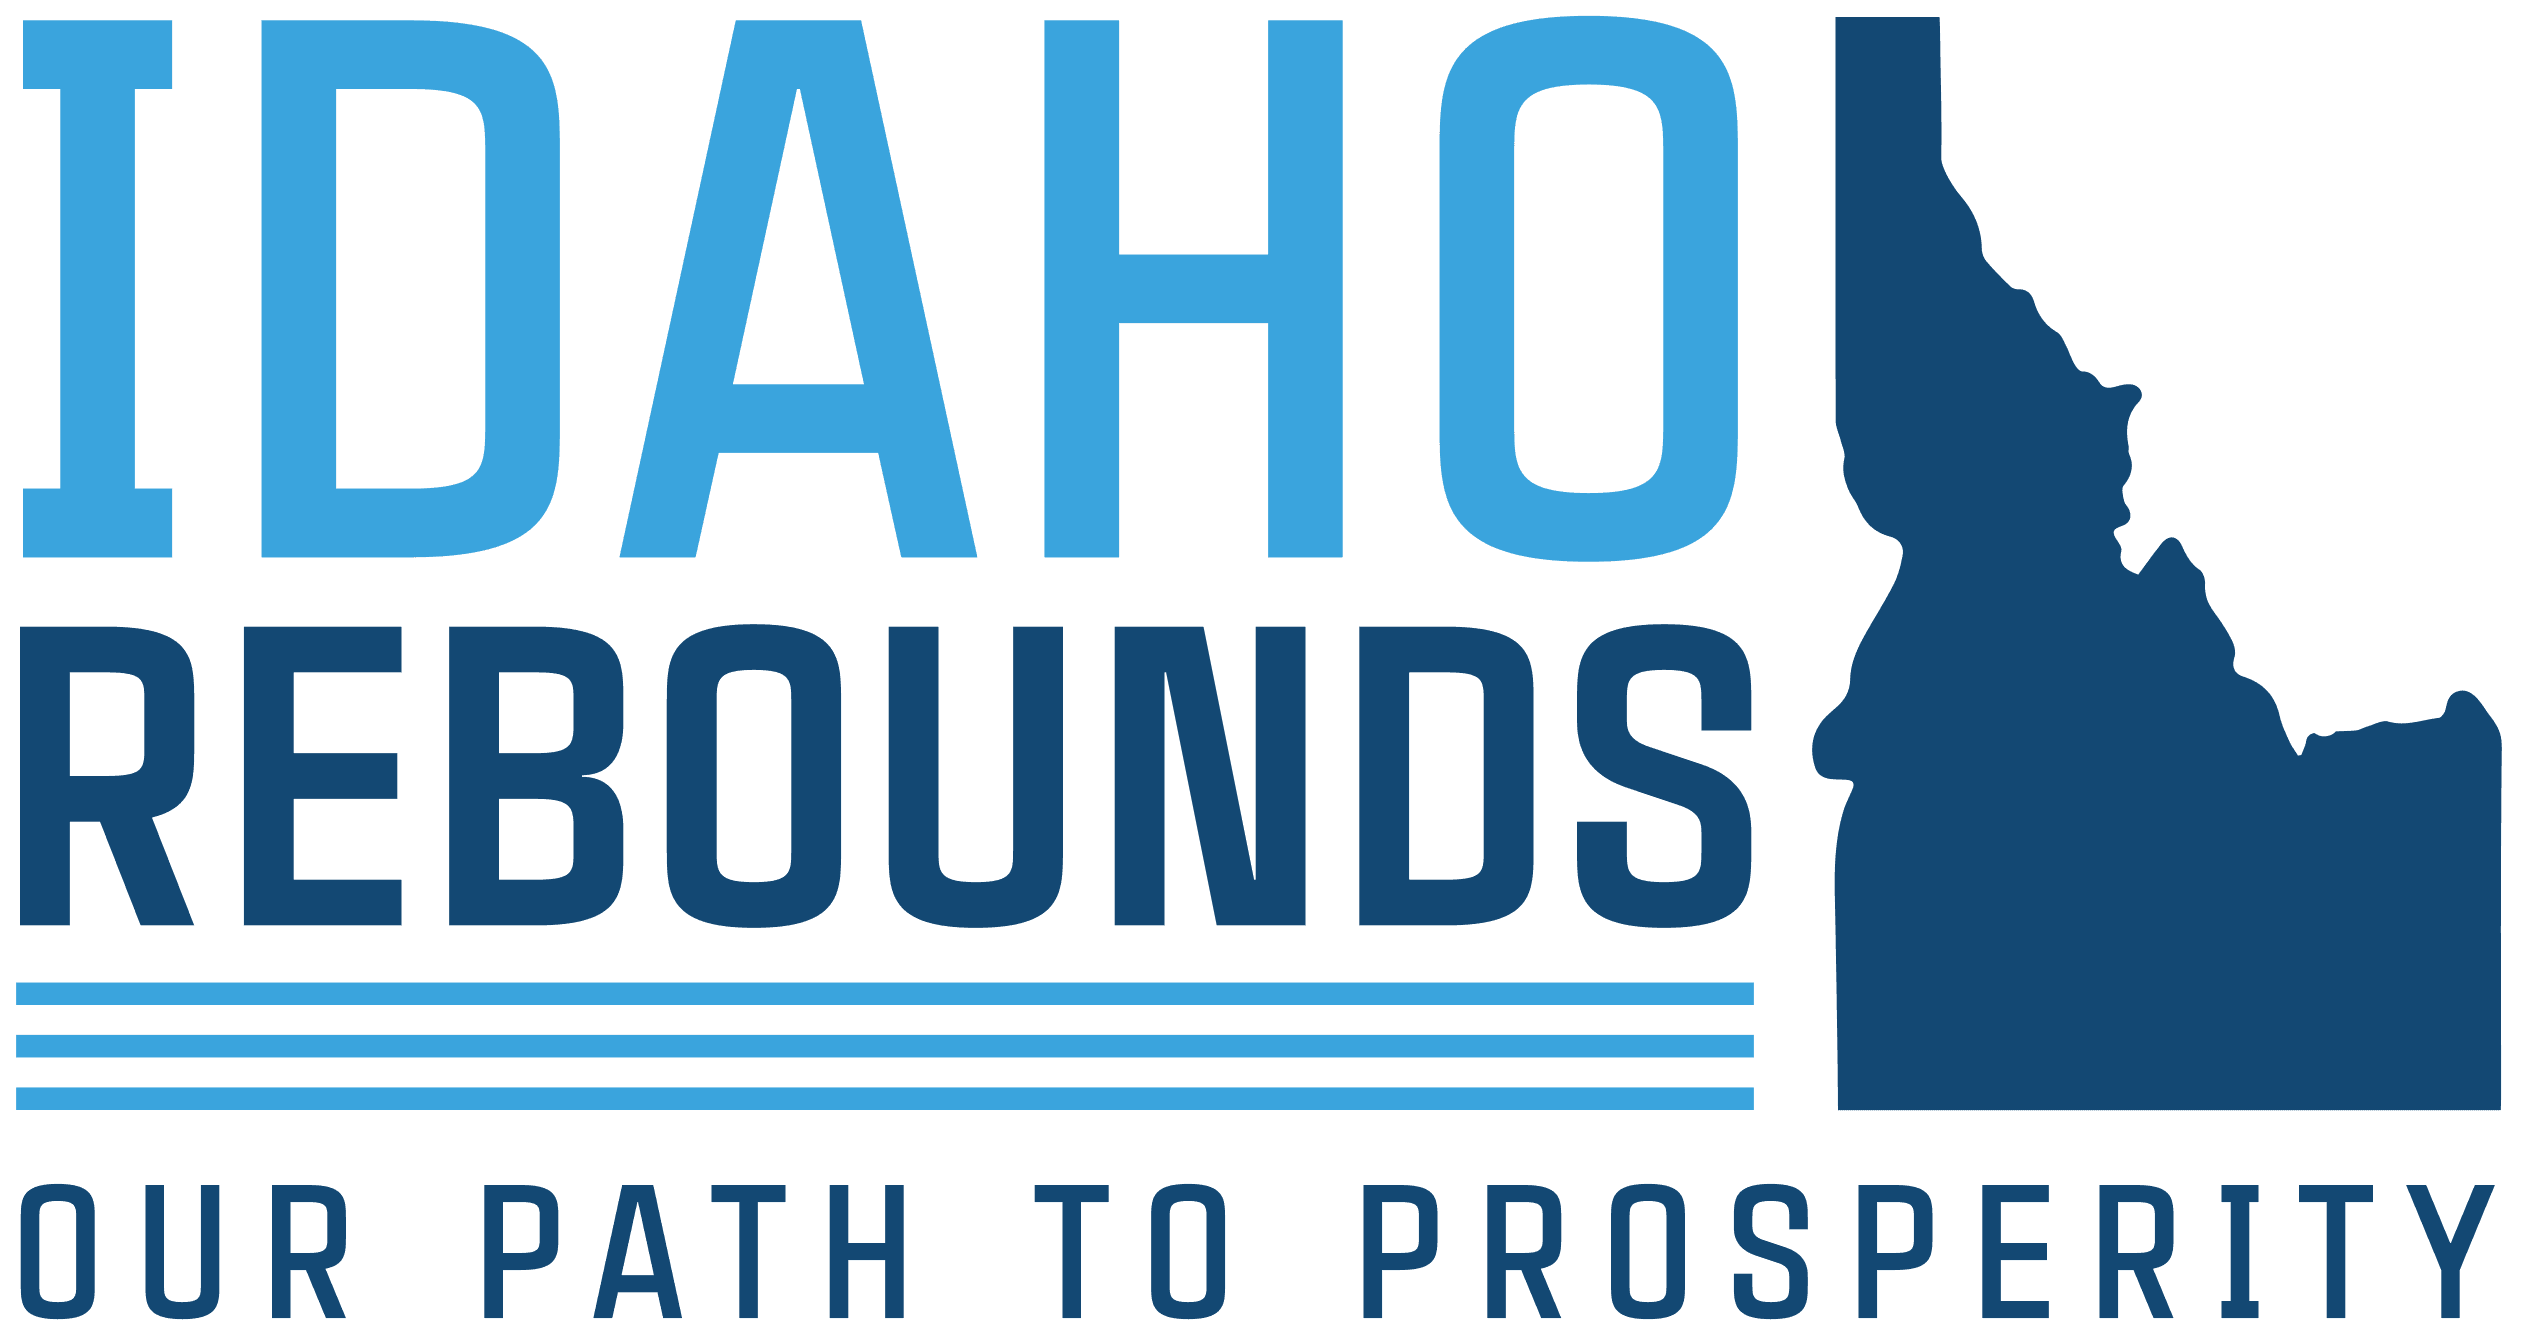 Idaho Rebounds Logo